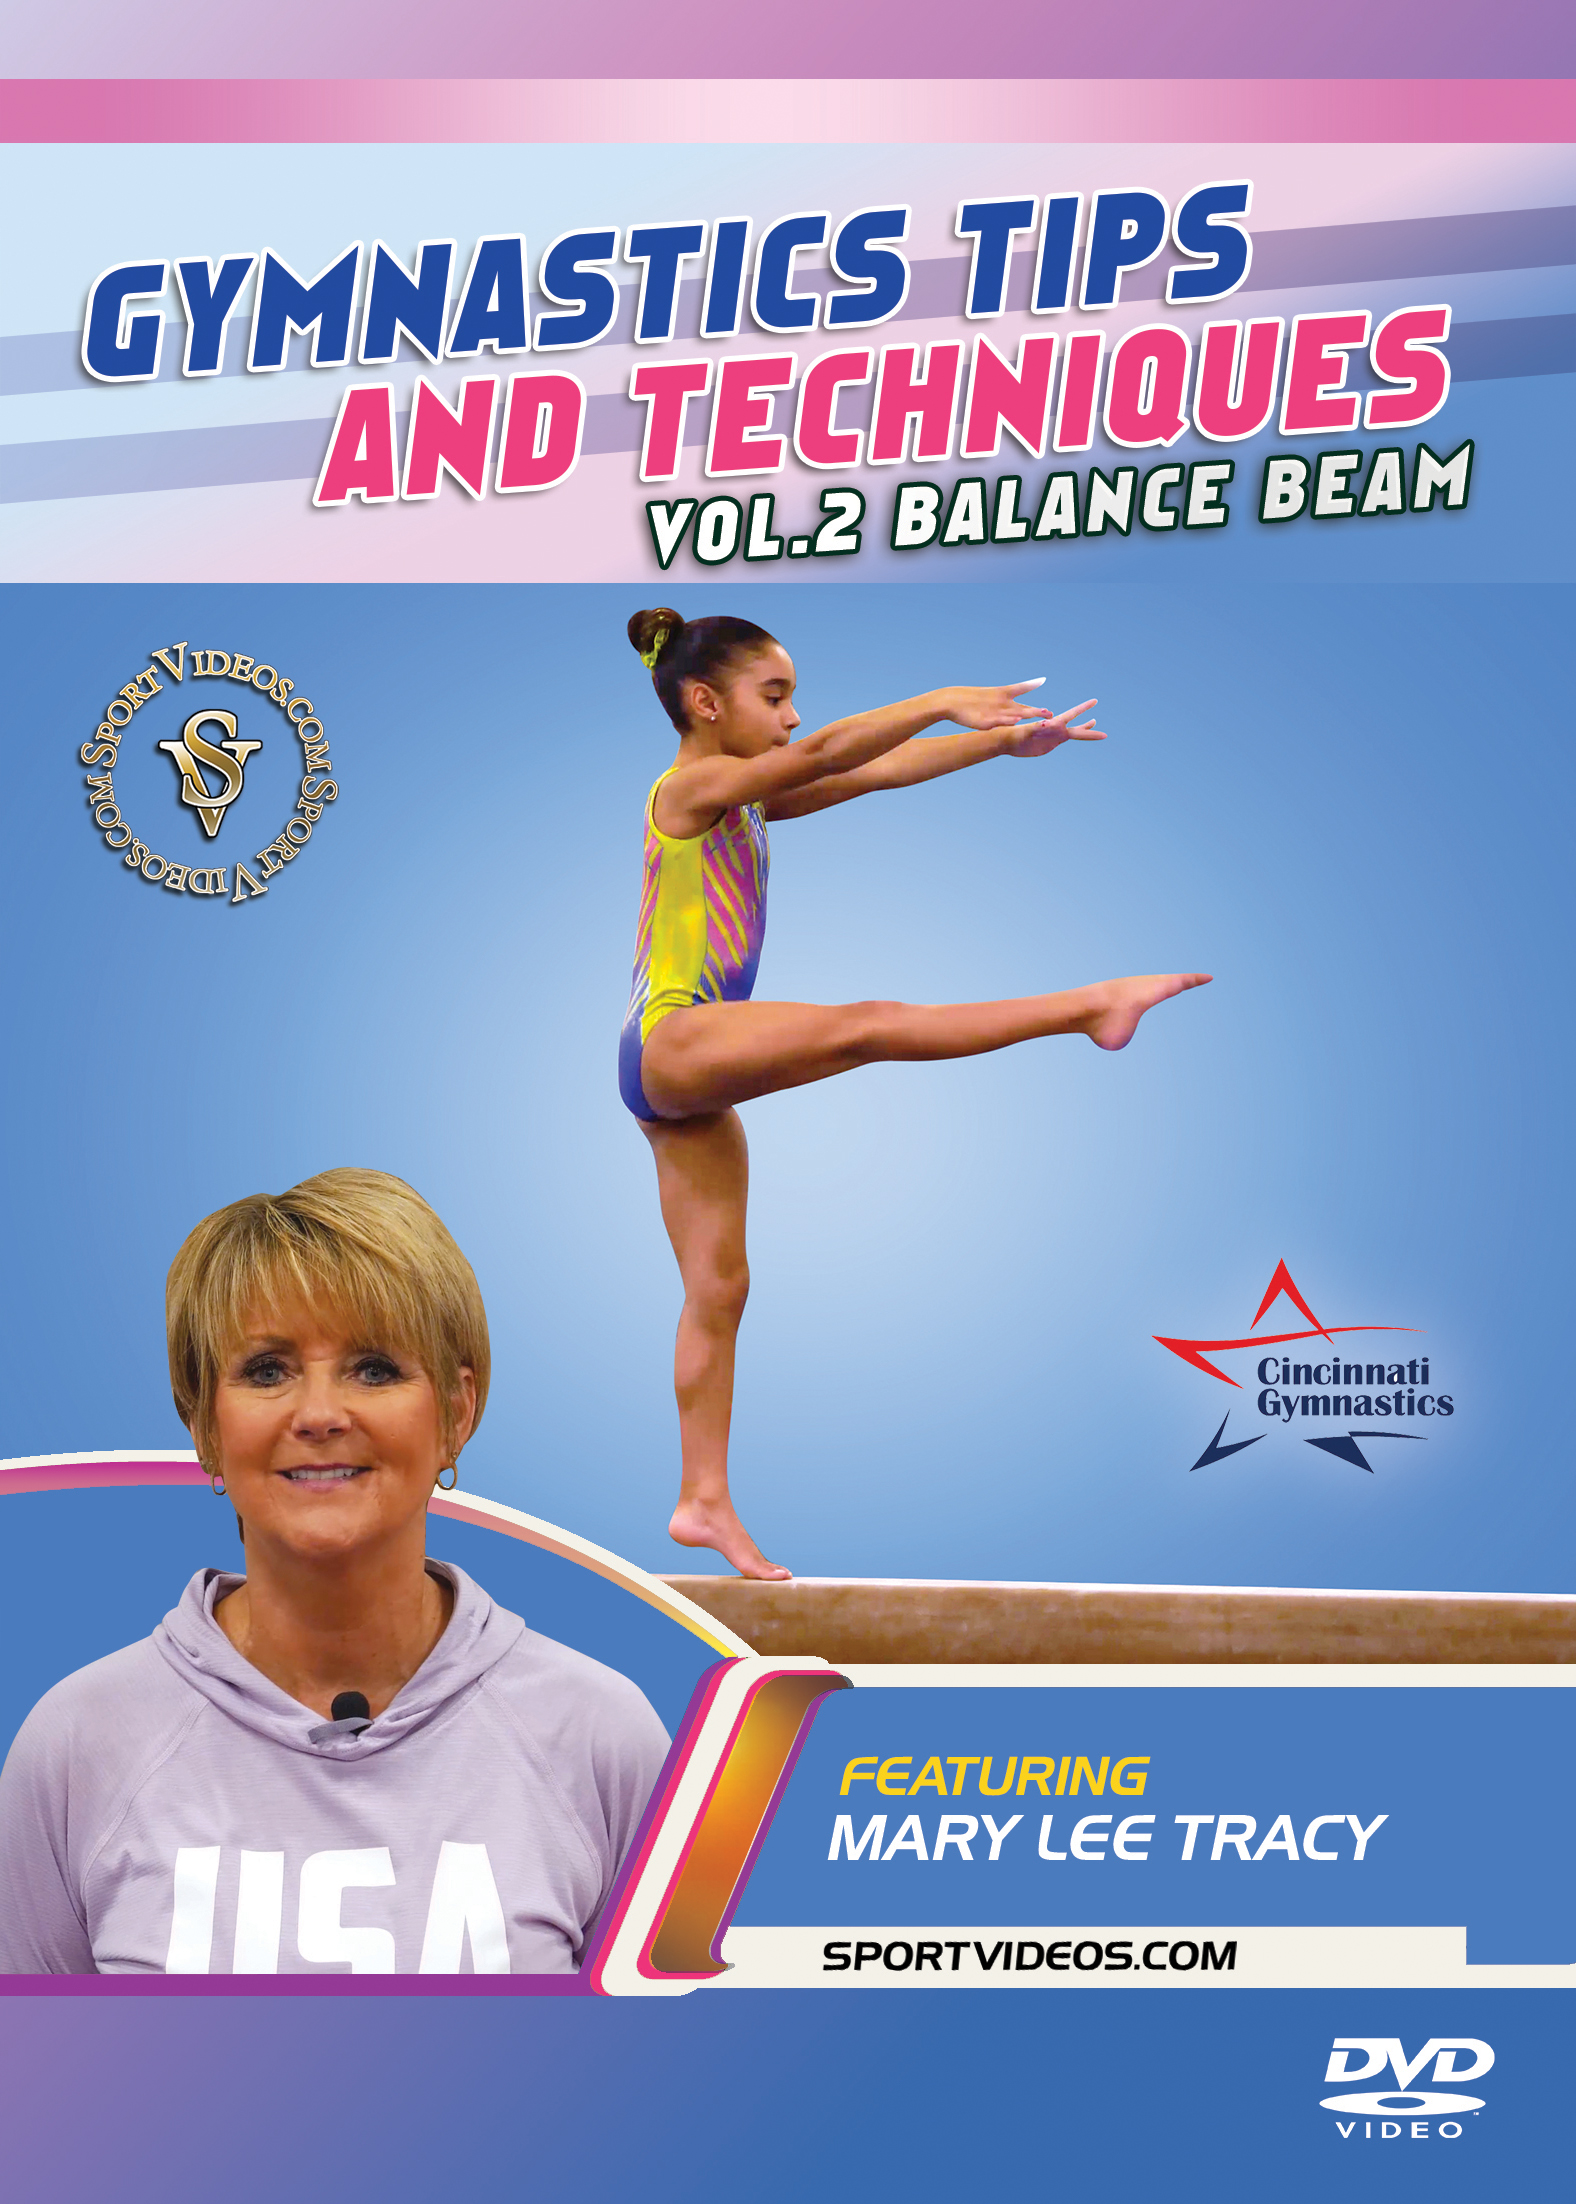 Gymnastics Tips and Techniques - Vol. 2 Beam DVD or Download (2018 Title) - Free Shipping